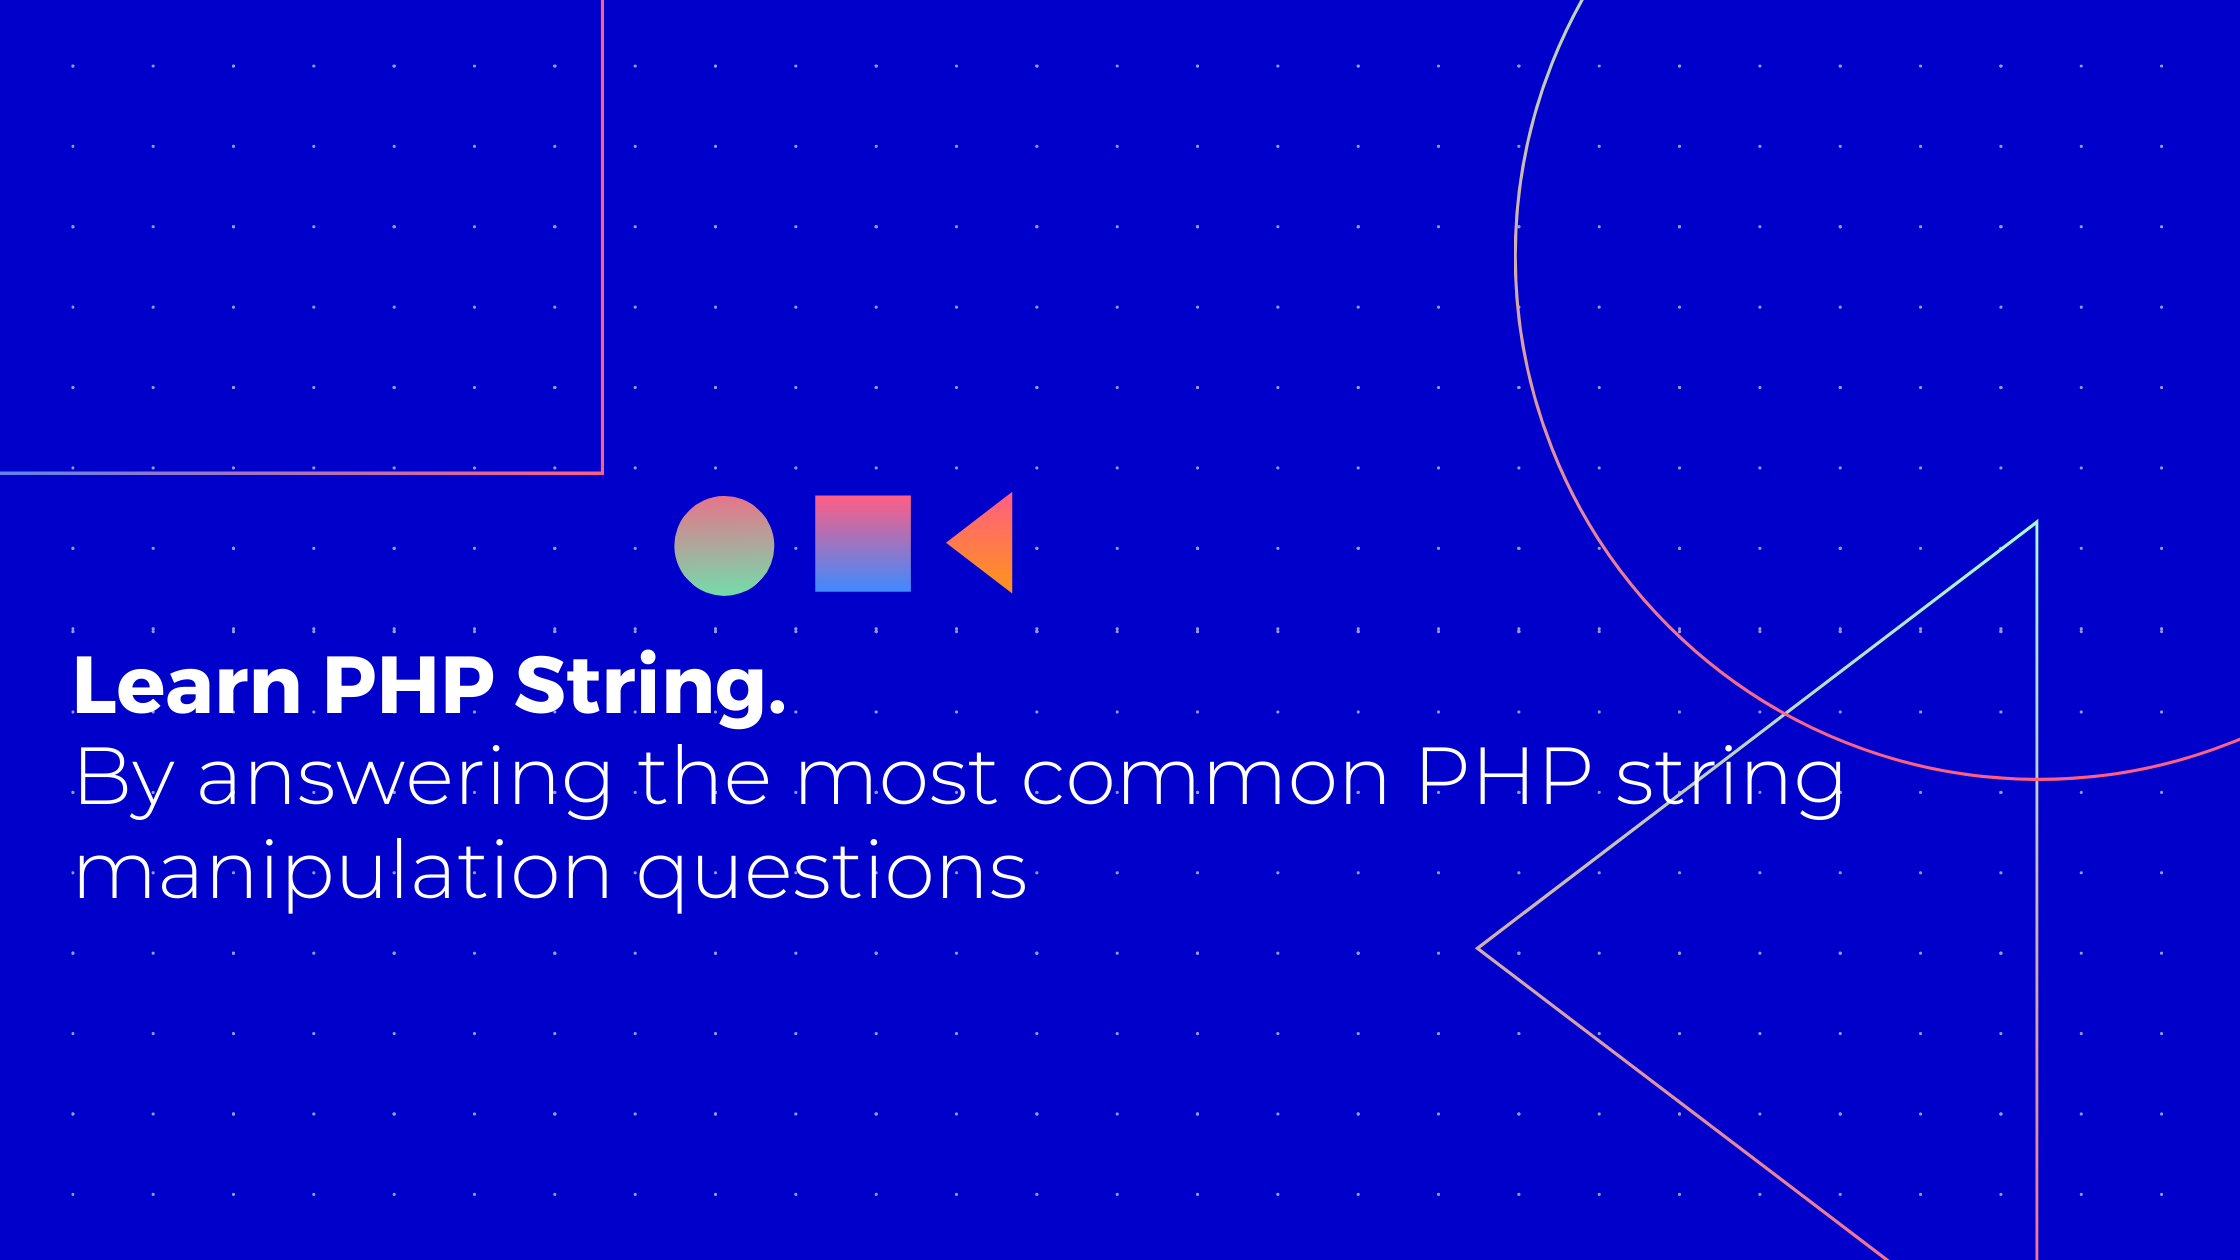 Learn PHP string by answering the most common string manipulation questions